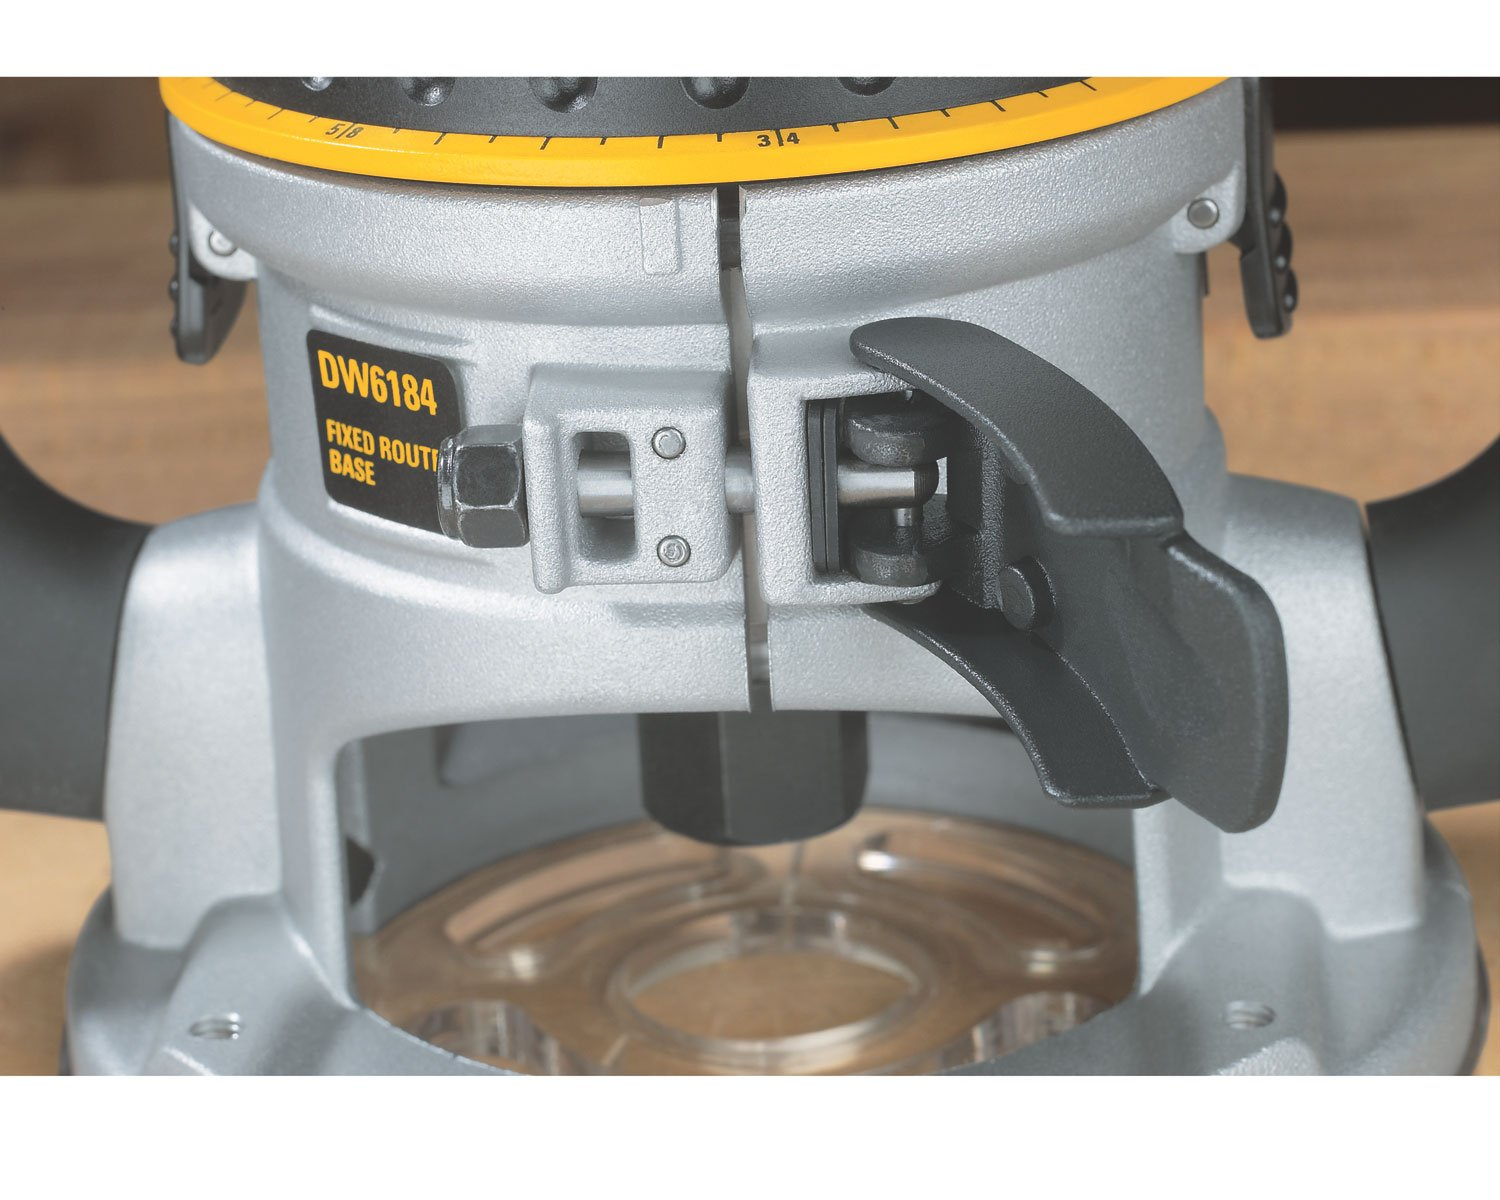 DEWALT DW618 2-1/4 HP Electronic Variable-Speed Fixed-Base Router by DEWALT (Image #5)